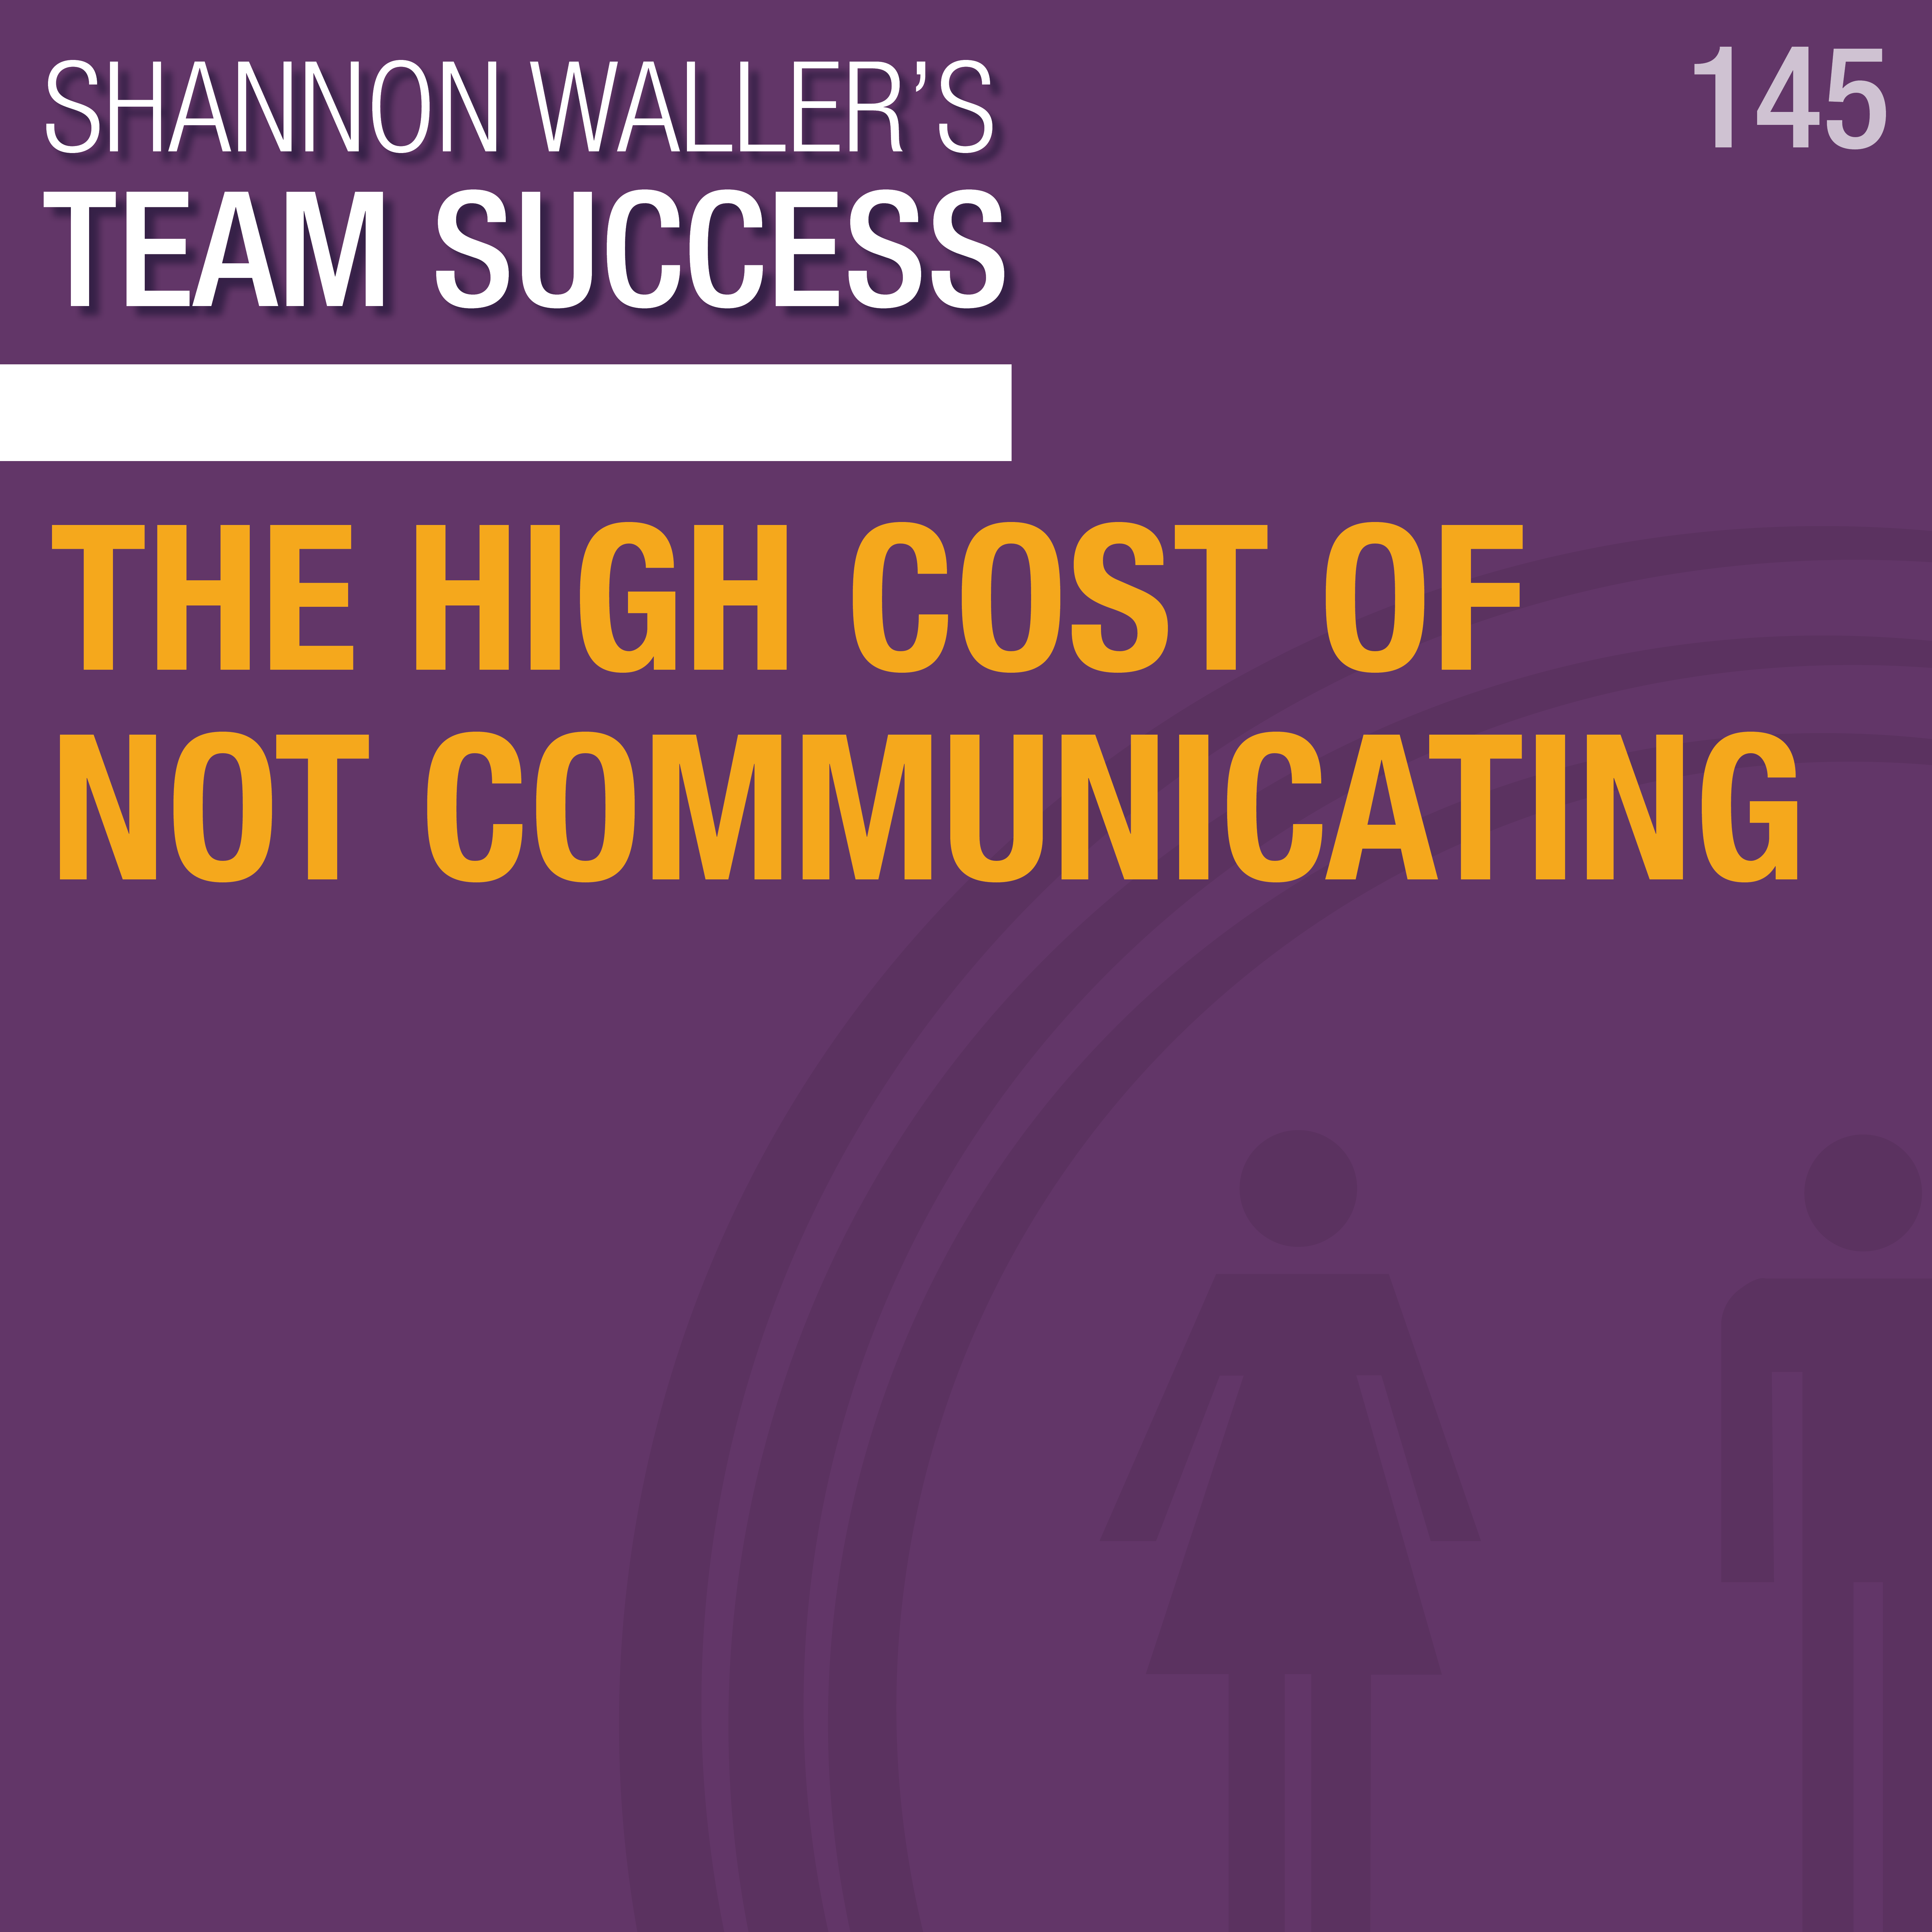 The High Cost Of Not Communicating